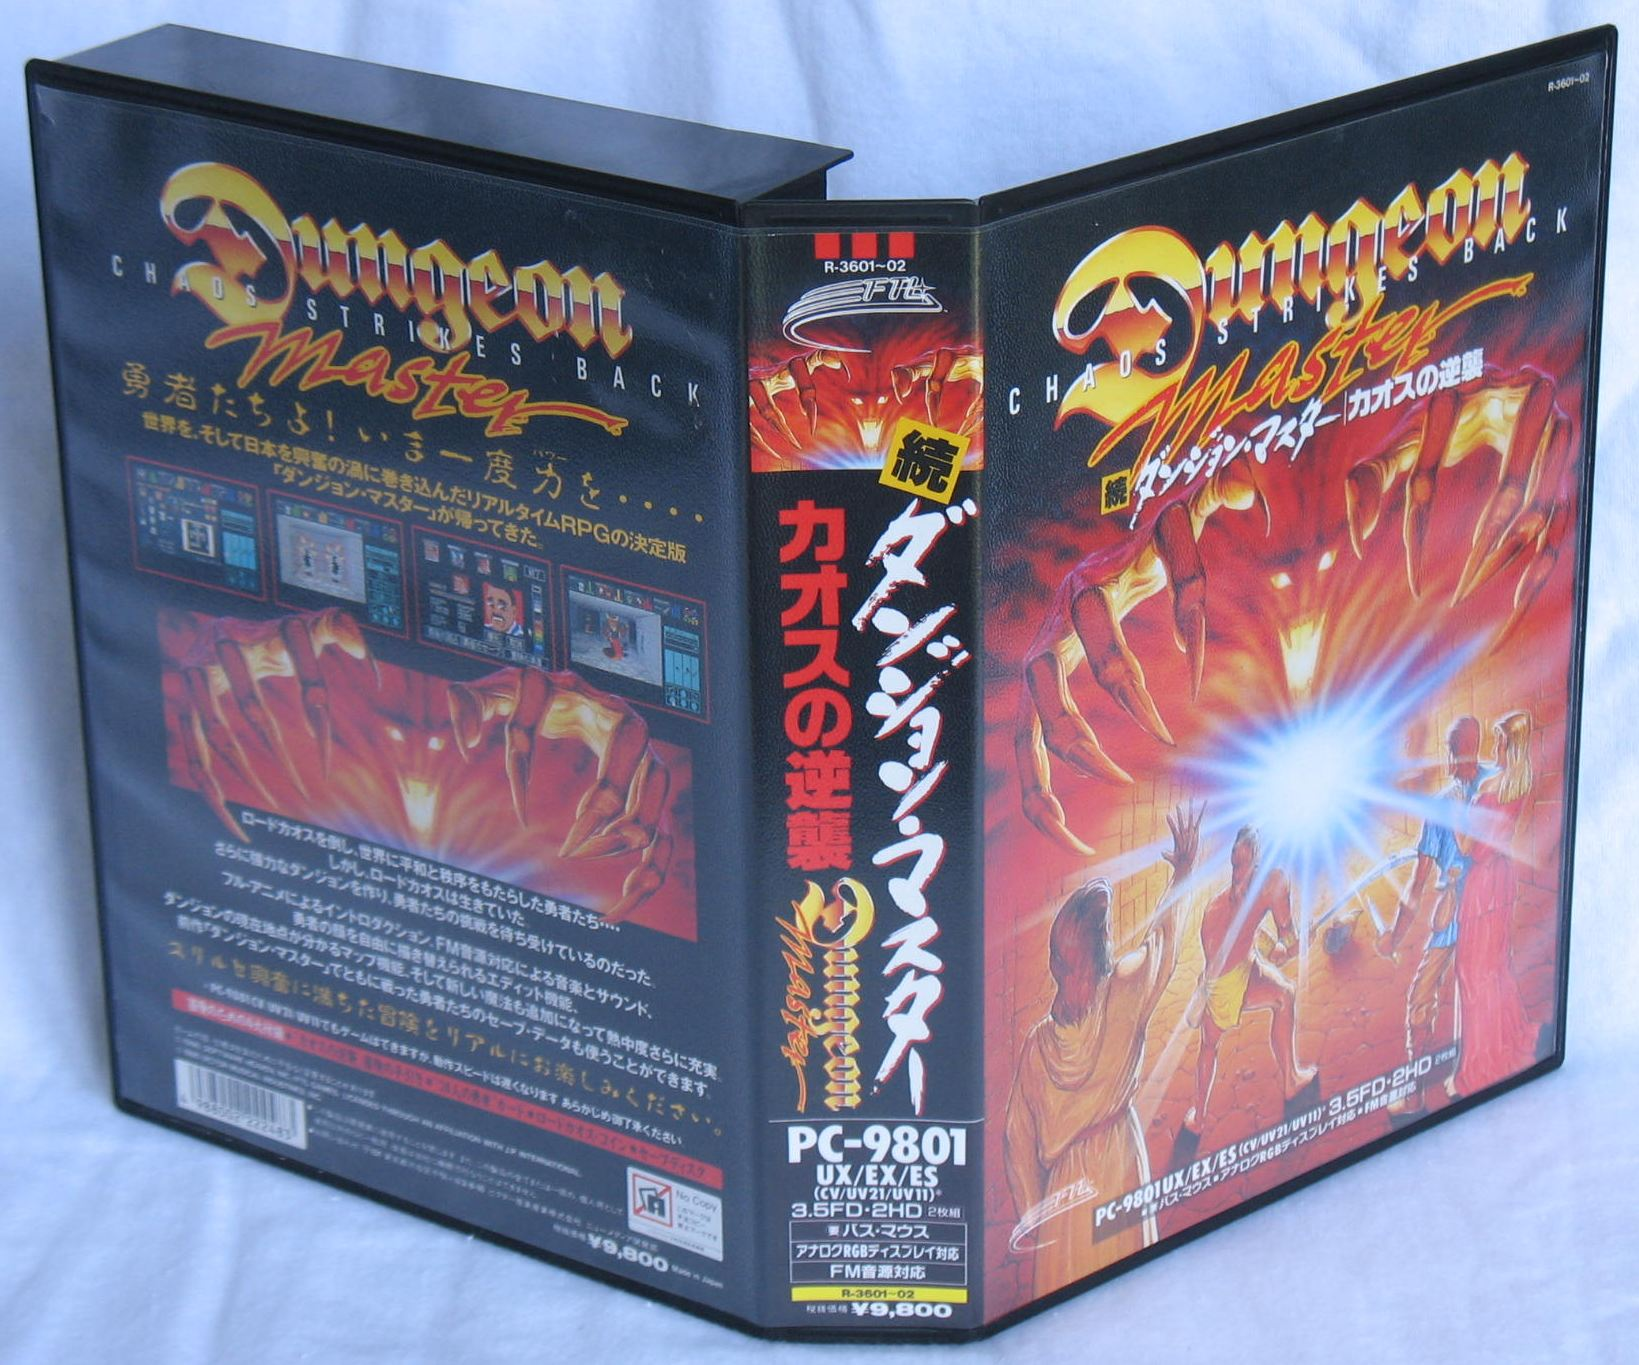 Game - Chaos Strikes Back - JP - PC-9801 - 3.5-inch - Box - Front Back Left Top - Photo